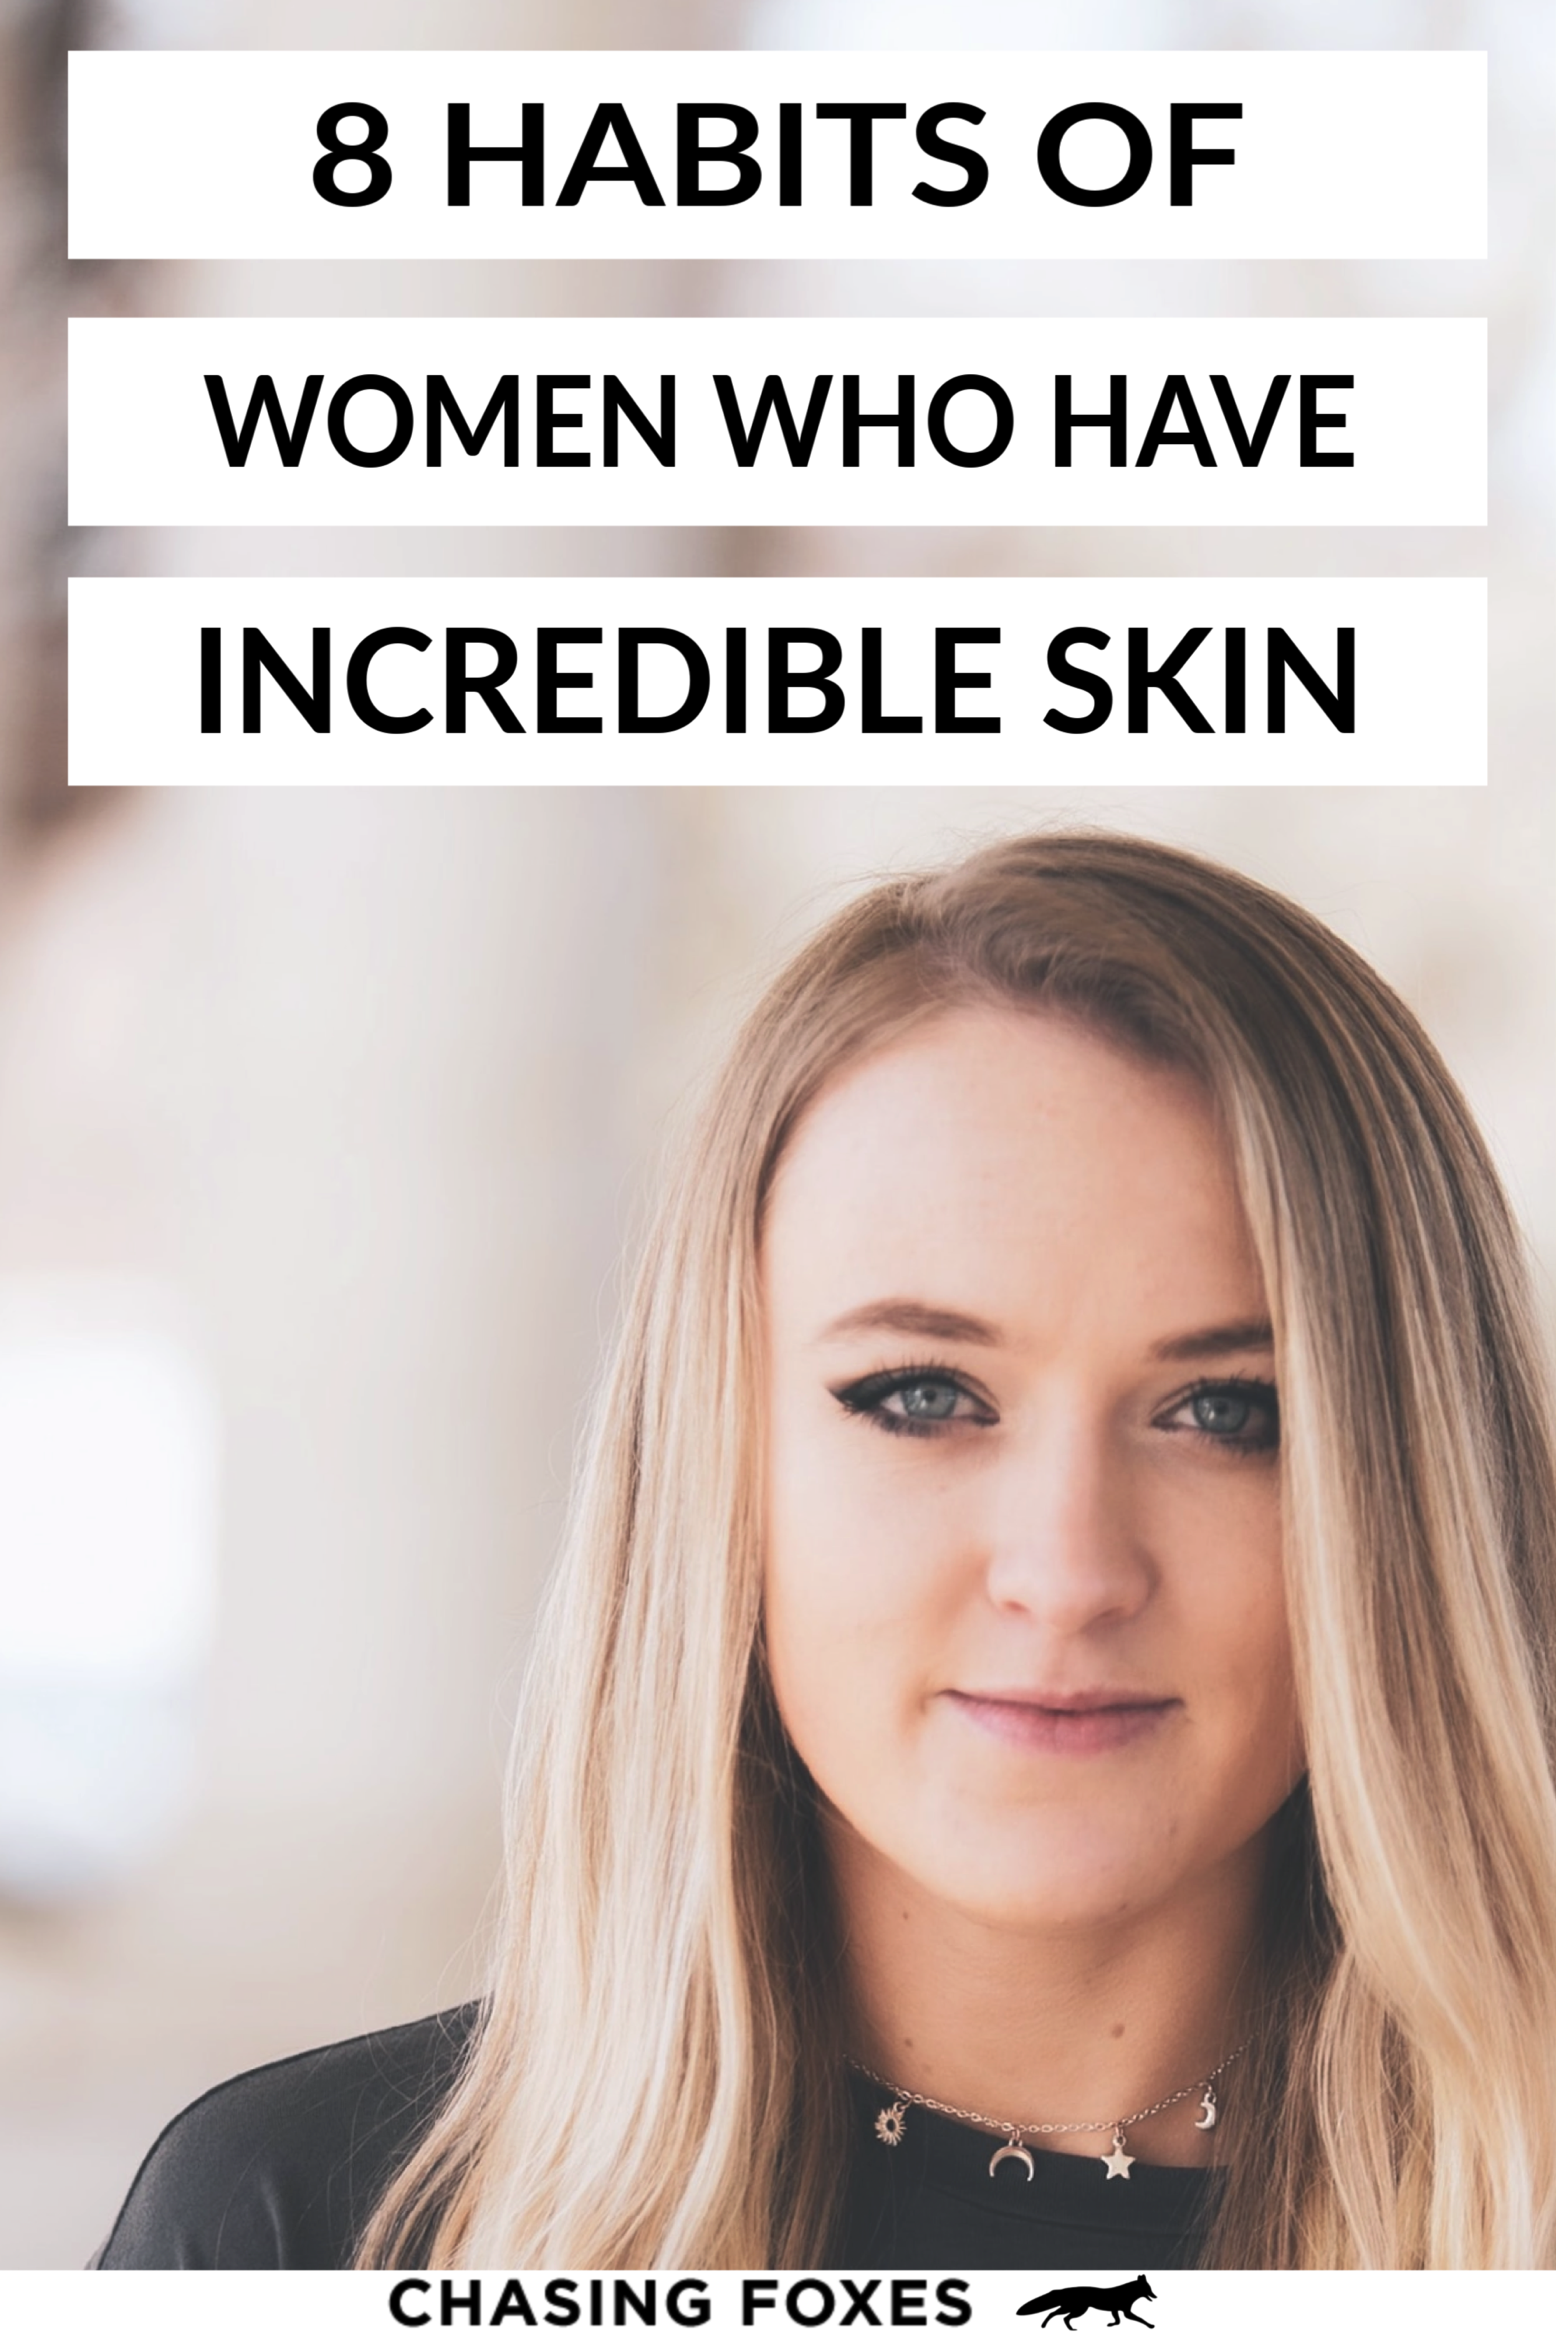 8 Simple Skin Care Tips In 2020 Beauty Hacks Simple Skincare Attractive Women